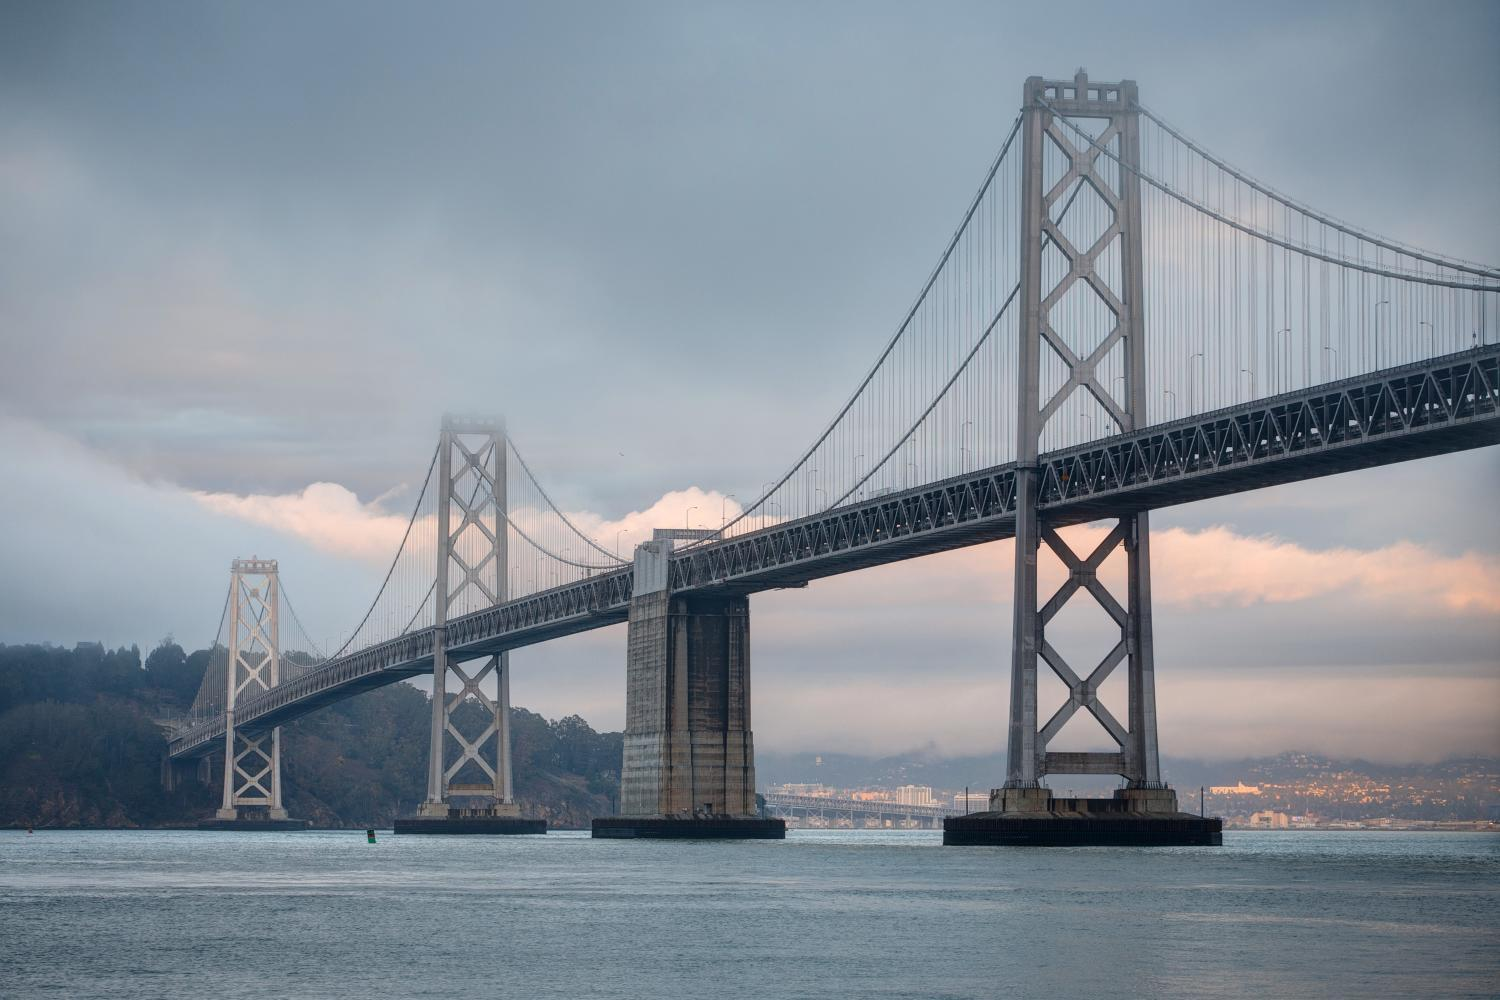 The+Bay+Bridge+stands+with+the+uncertainty+of+increased+tolls+that+frustrate+some+and+appeal+to+others.